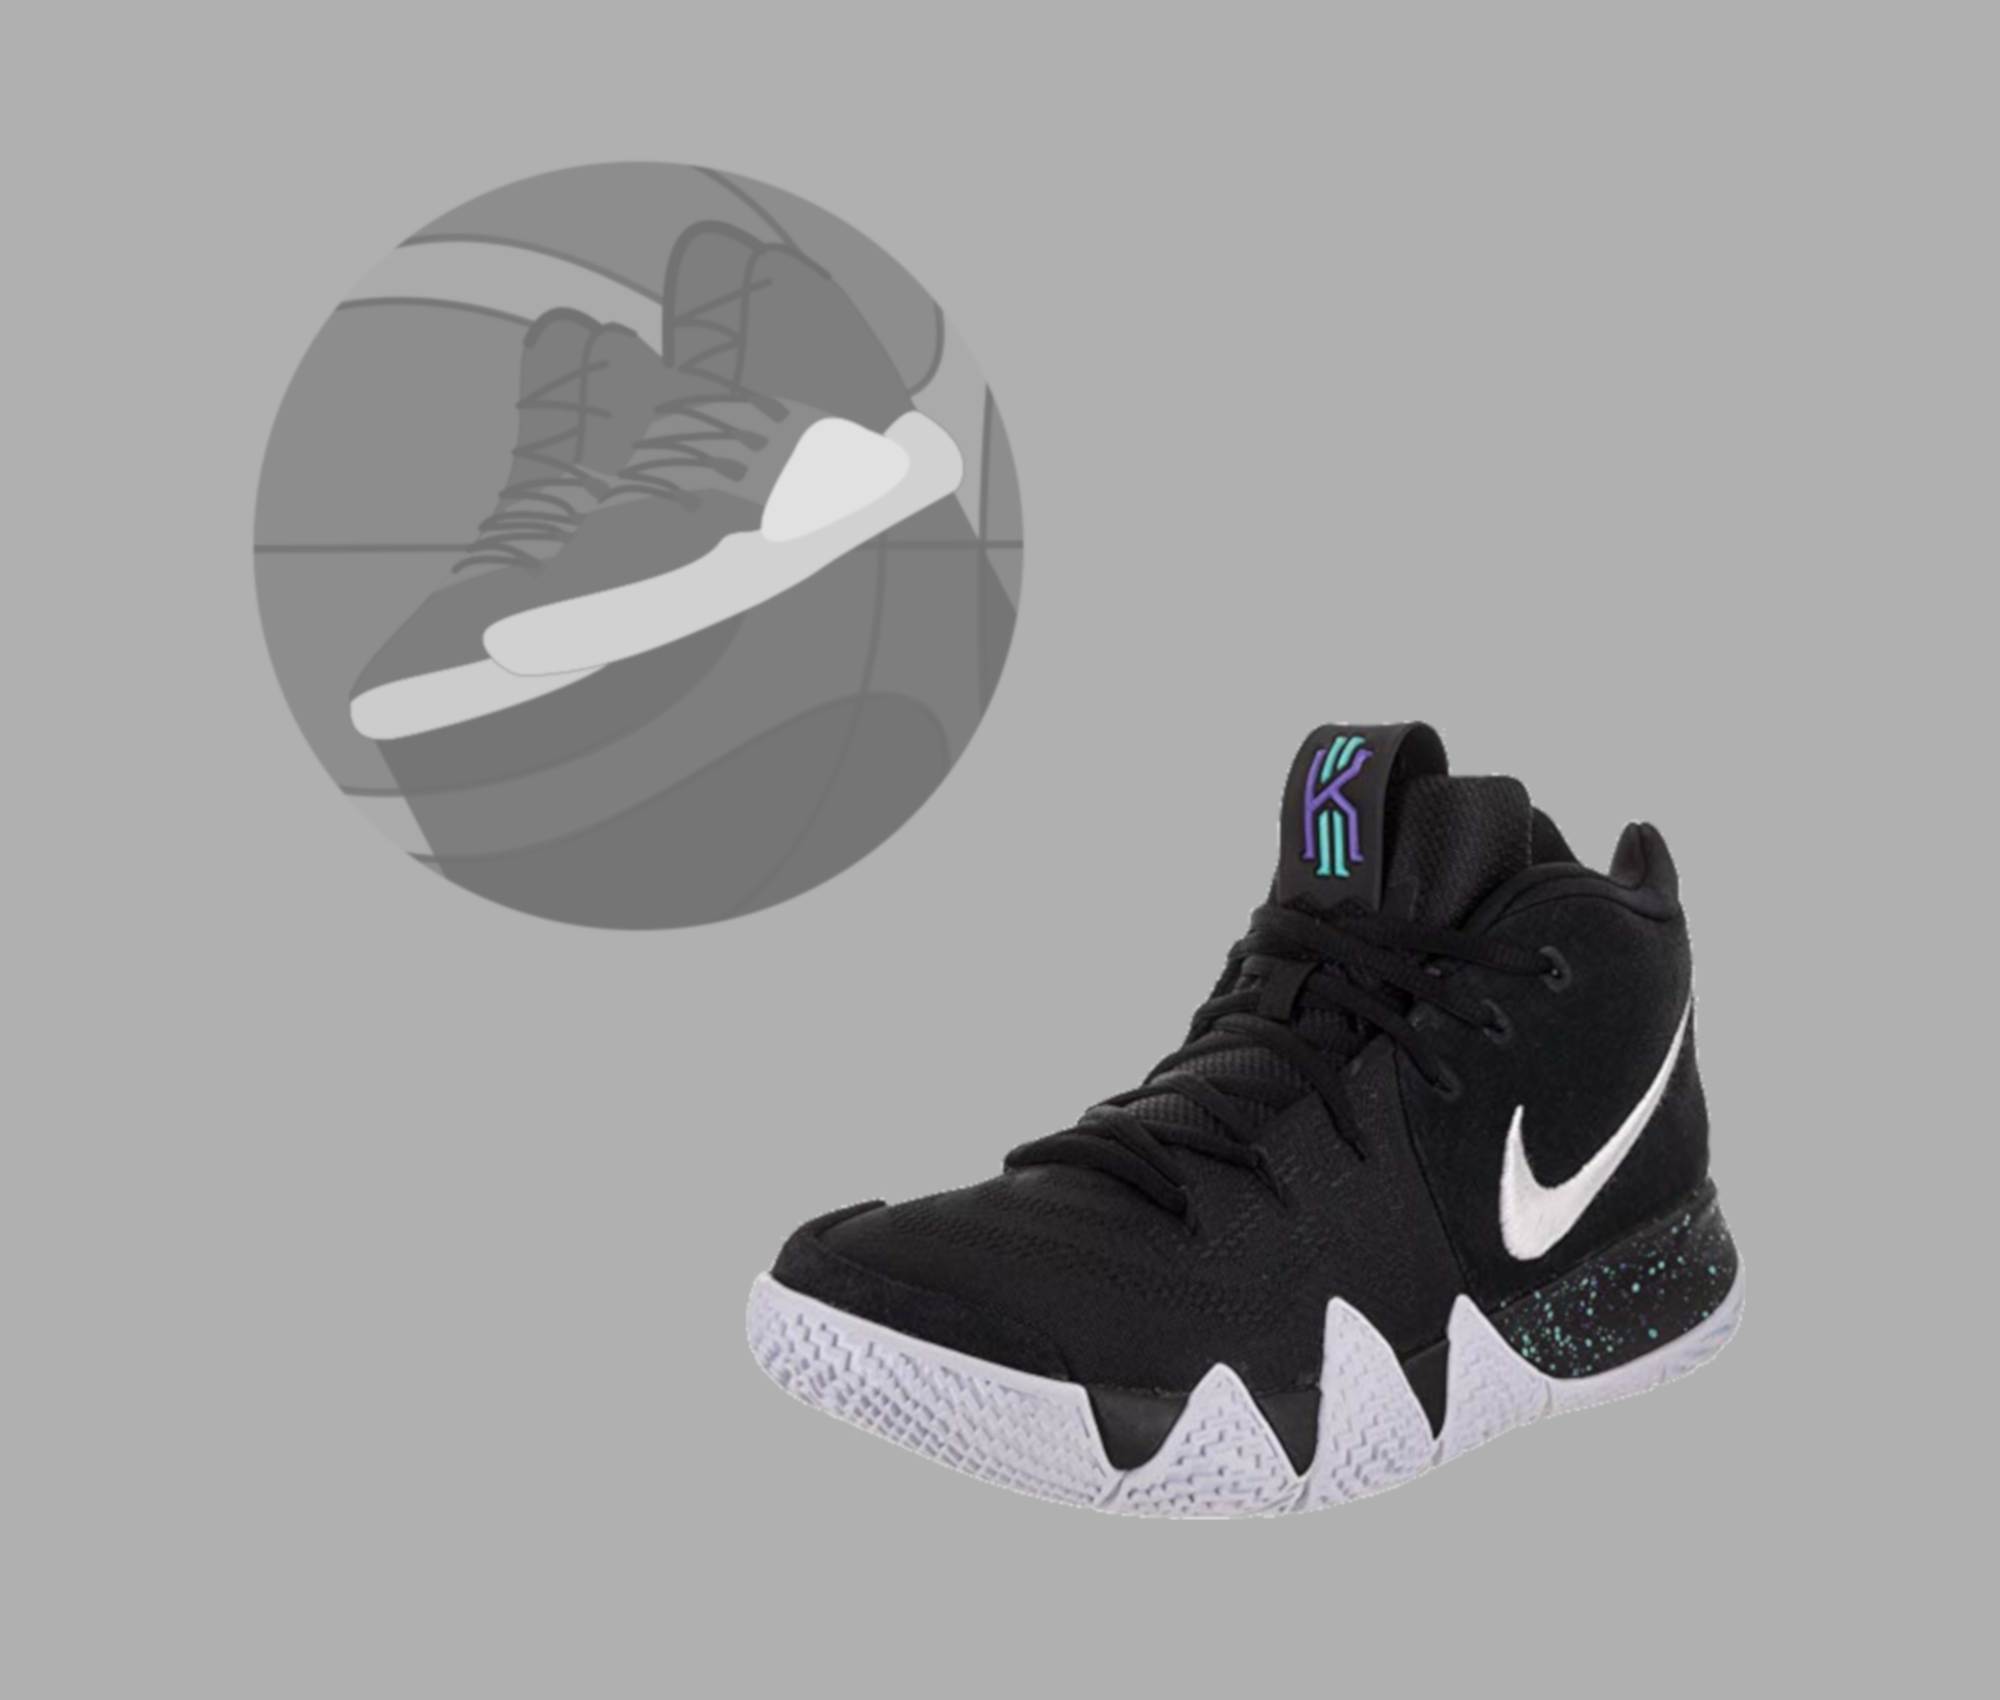 the best attitude 4b311 7a717 NIKE KYRIE 4 PERFORMANCE REVIEW - Basketballschuhe-Tests